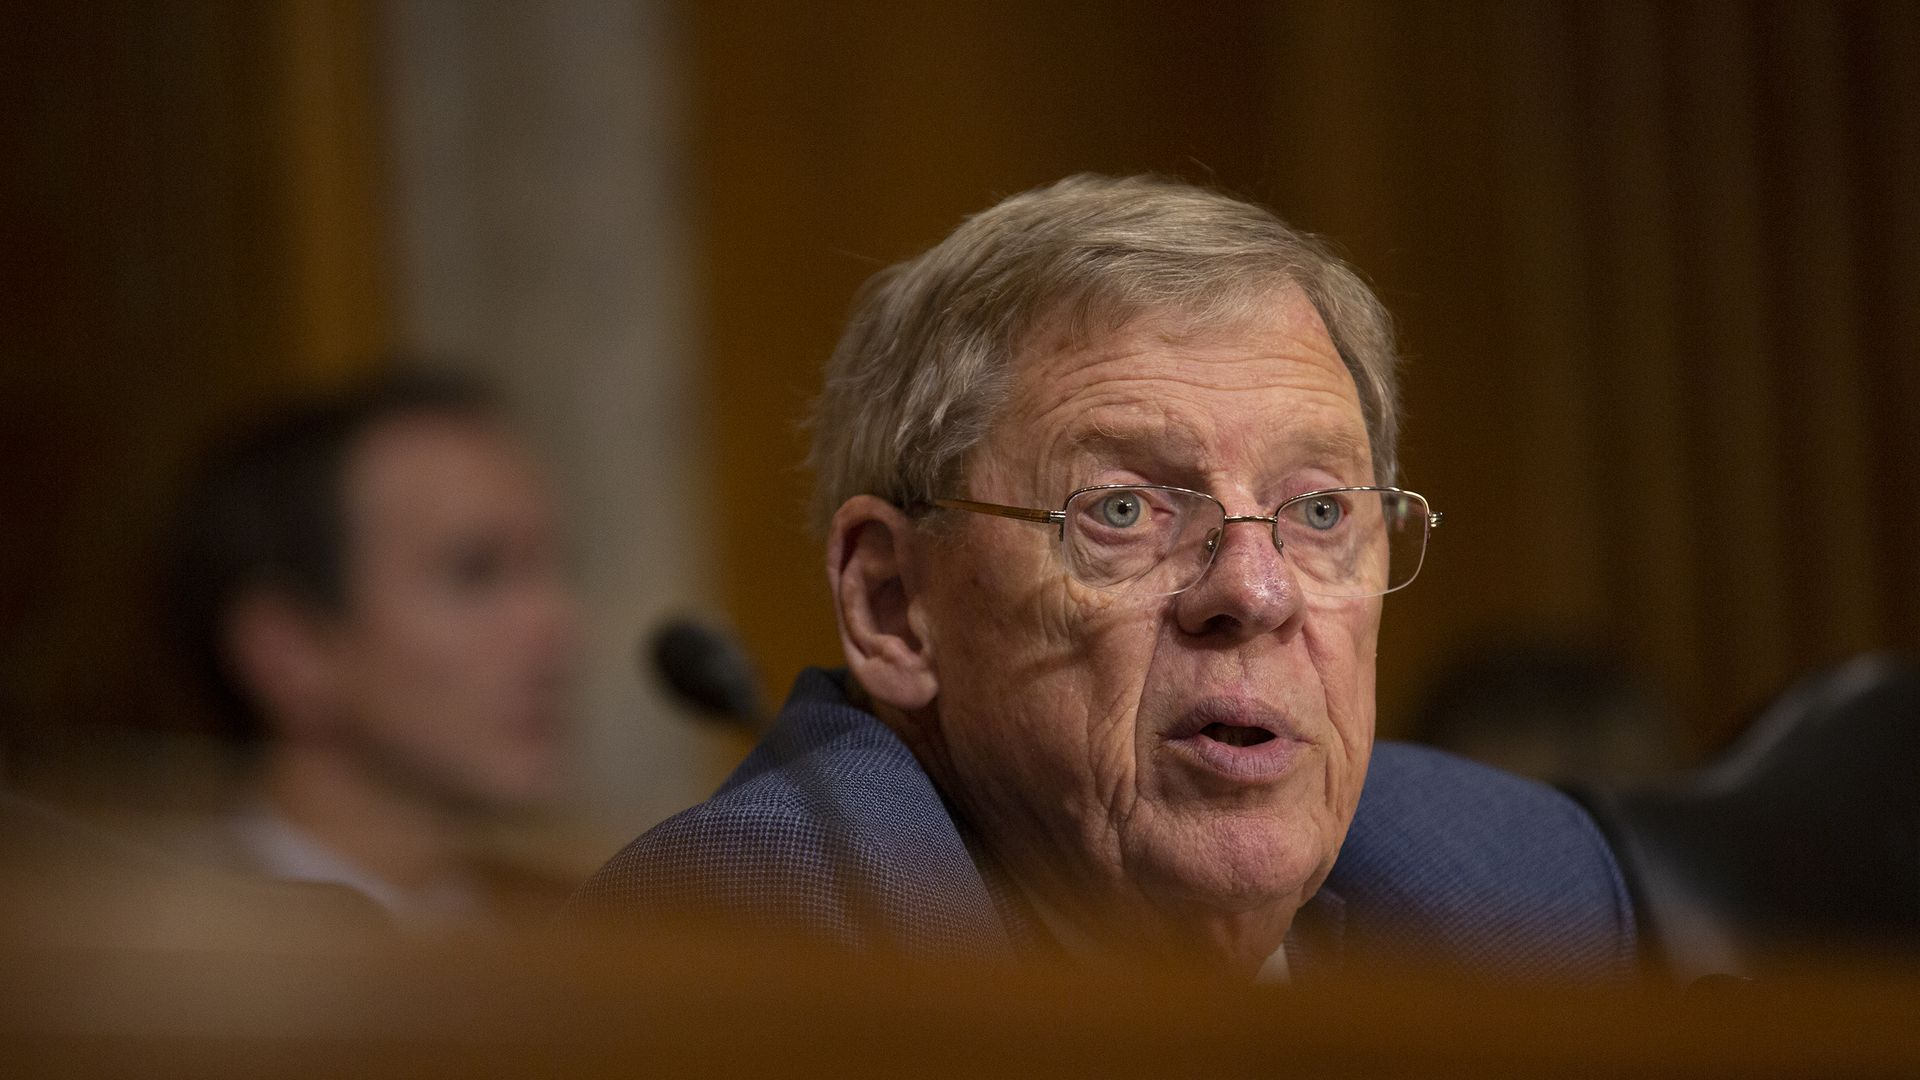 Sen. Johnny Isakson (R-GA) questions Kelly Craft, President Trump's nominee to be Representative to the United Nations, during her nomination hearing on June 19.